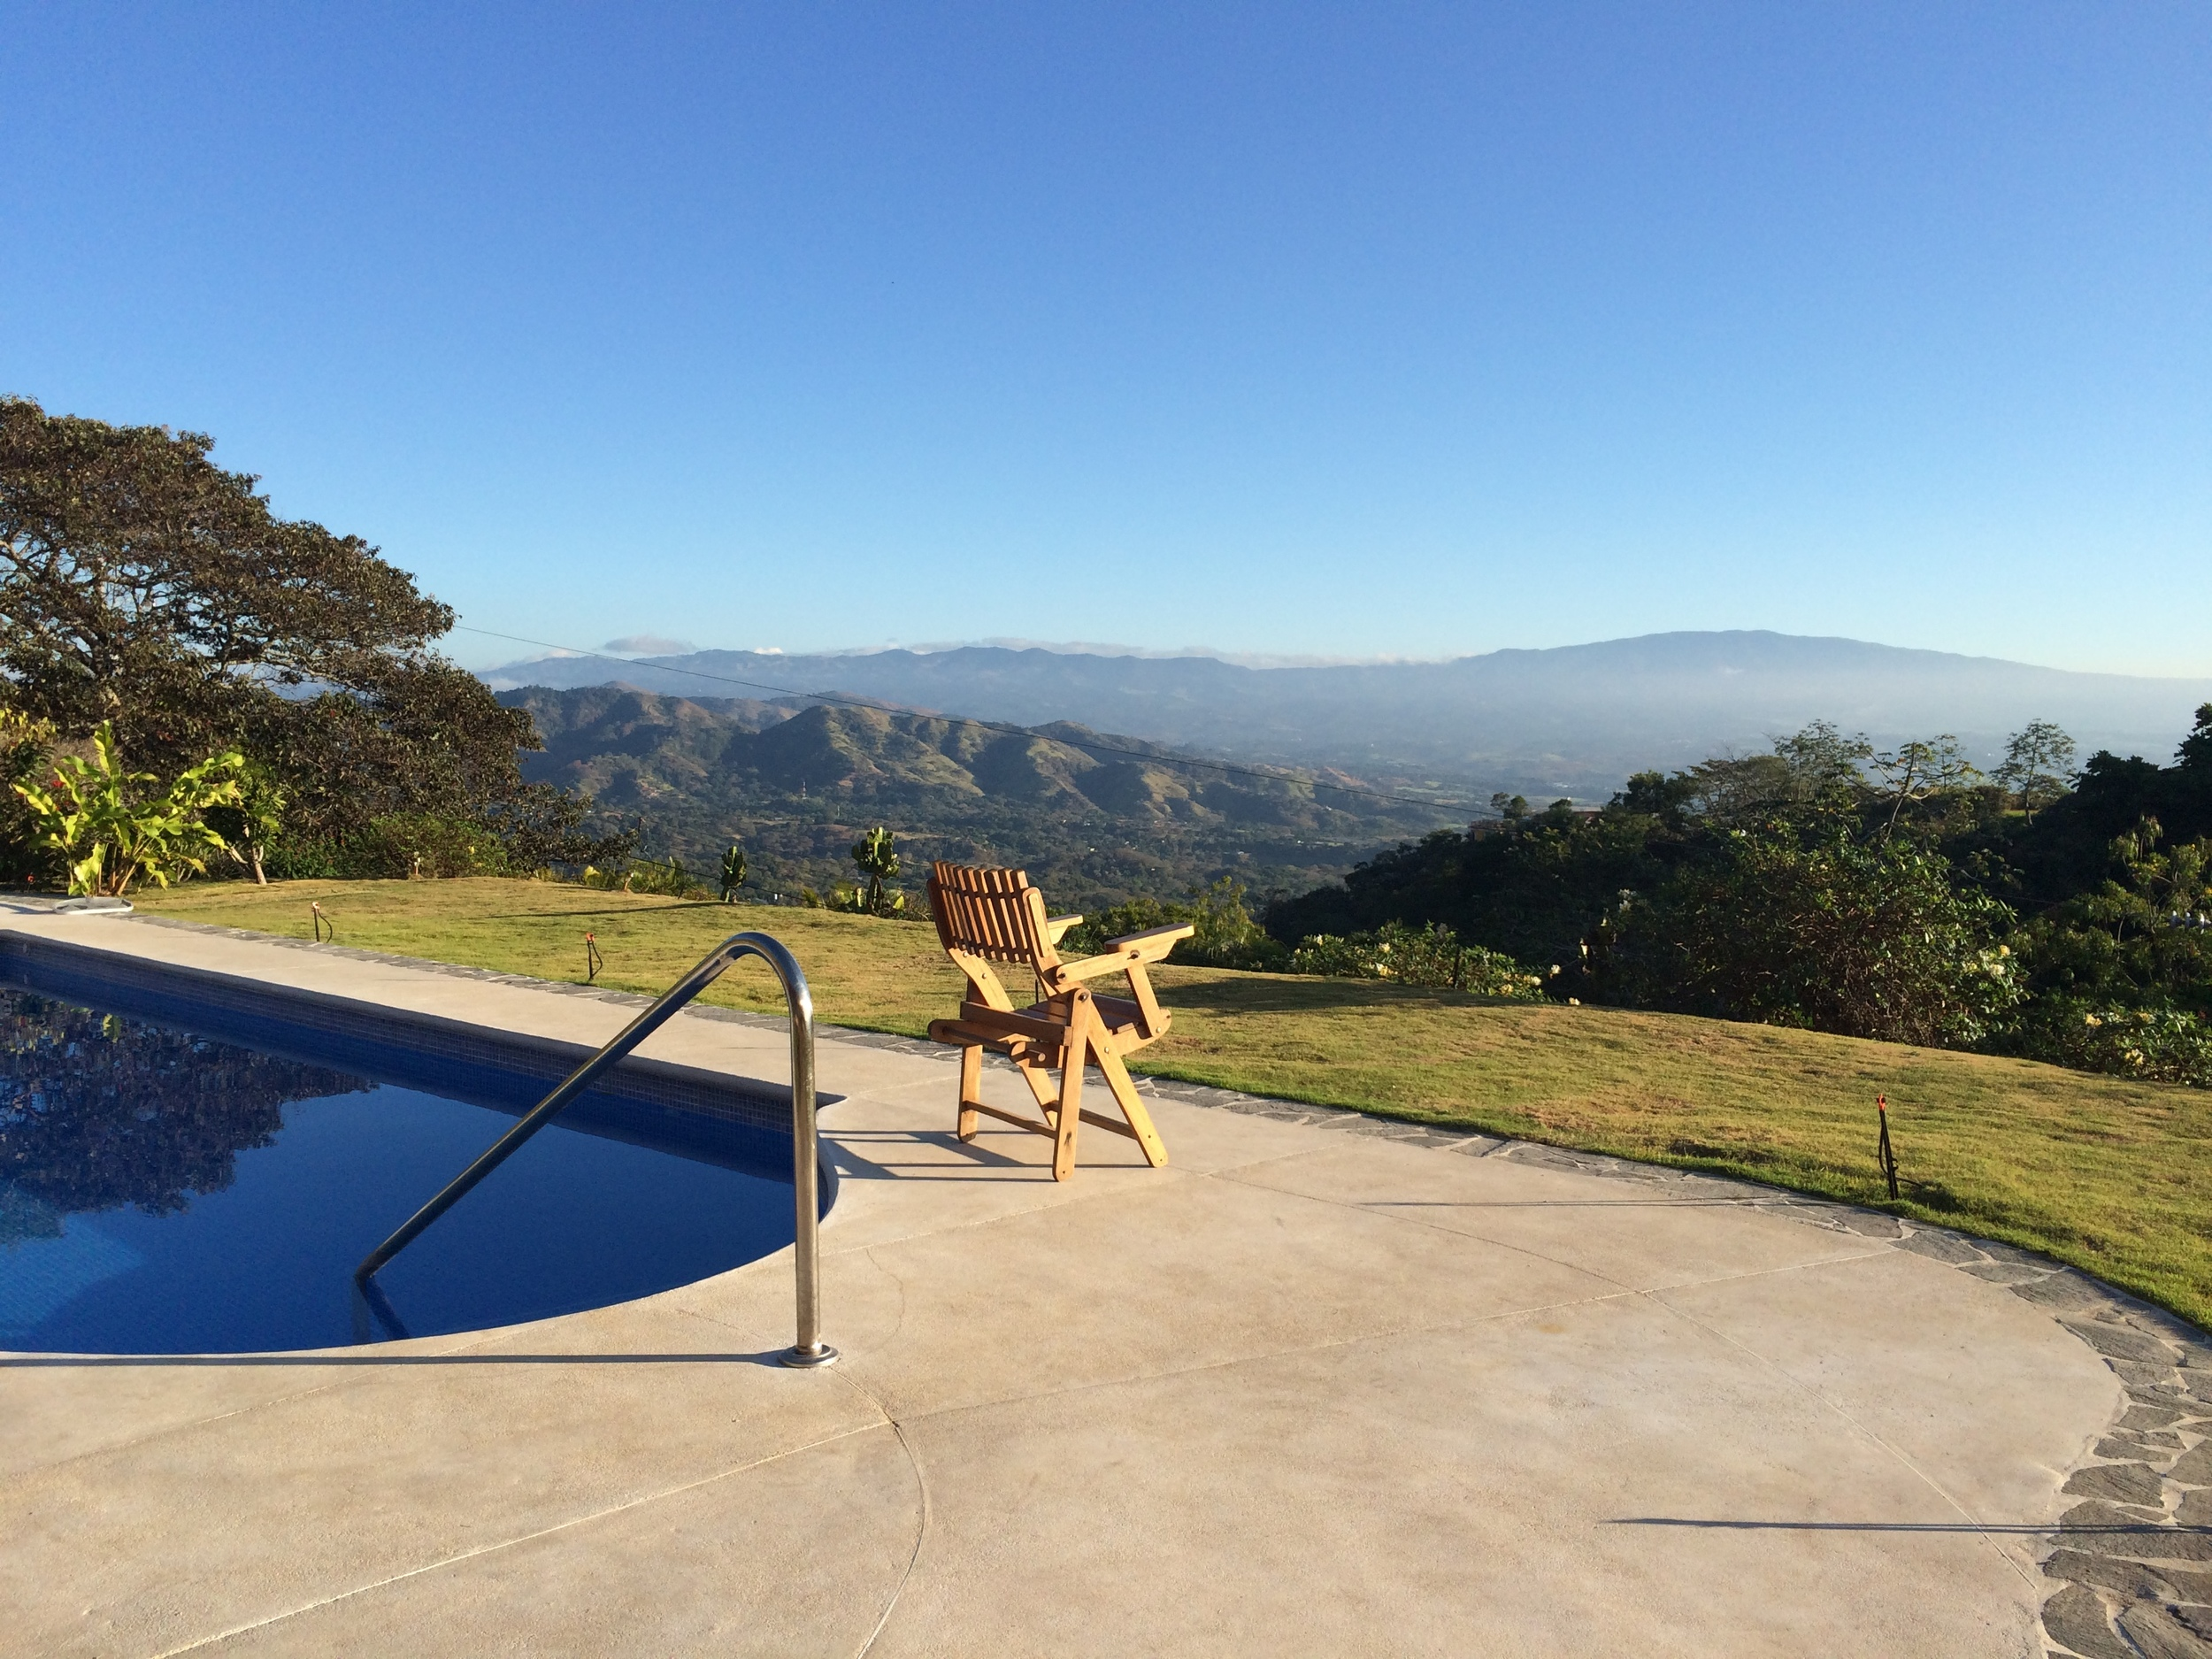 View into the Central Valley from poolside.